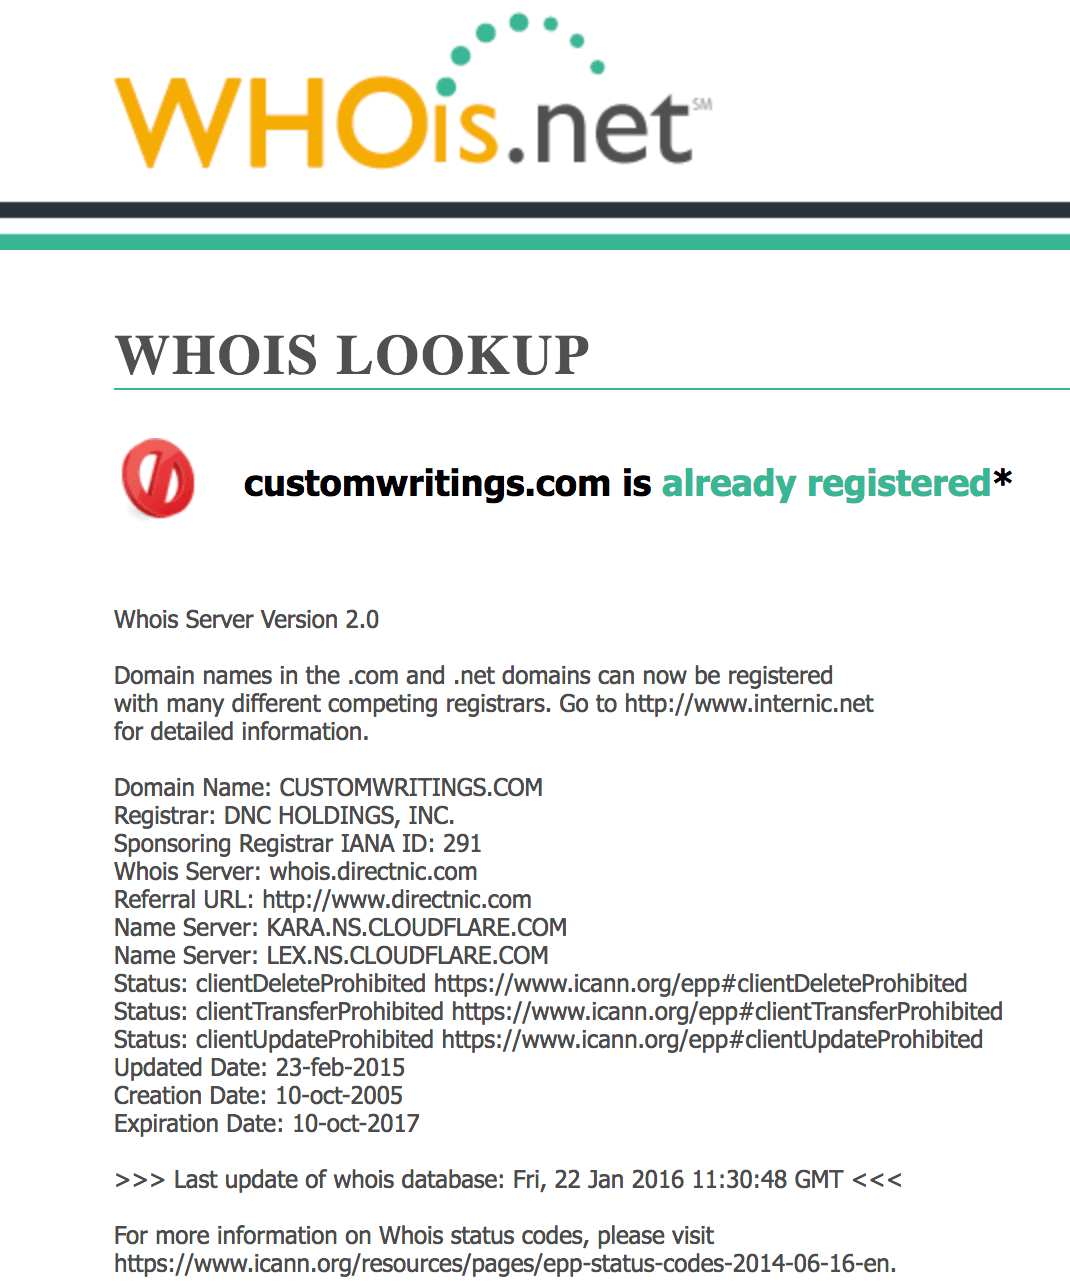 Customwritings.com whois lookup